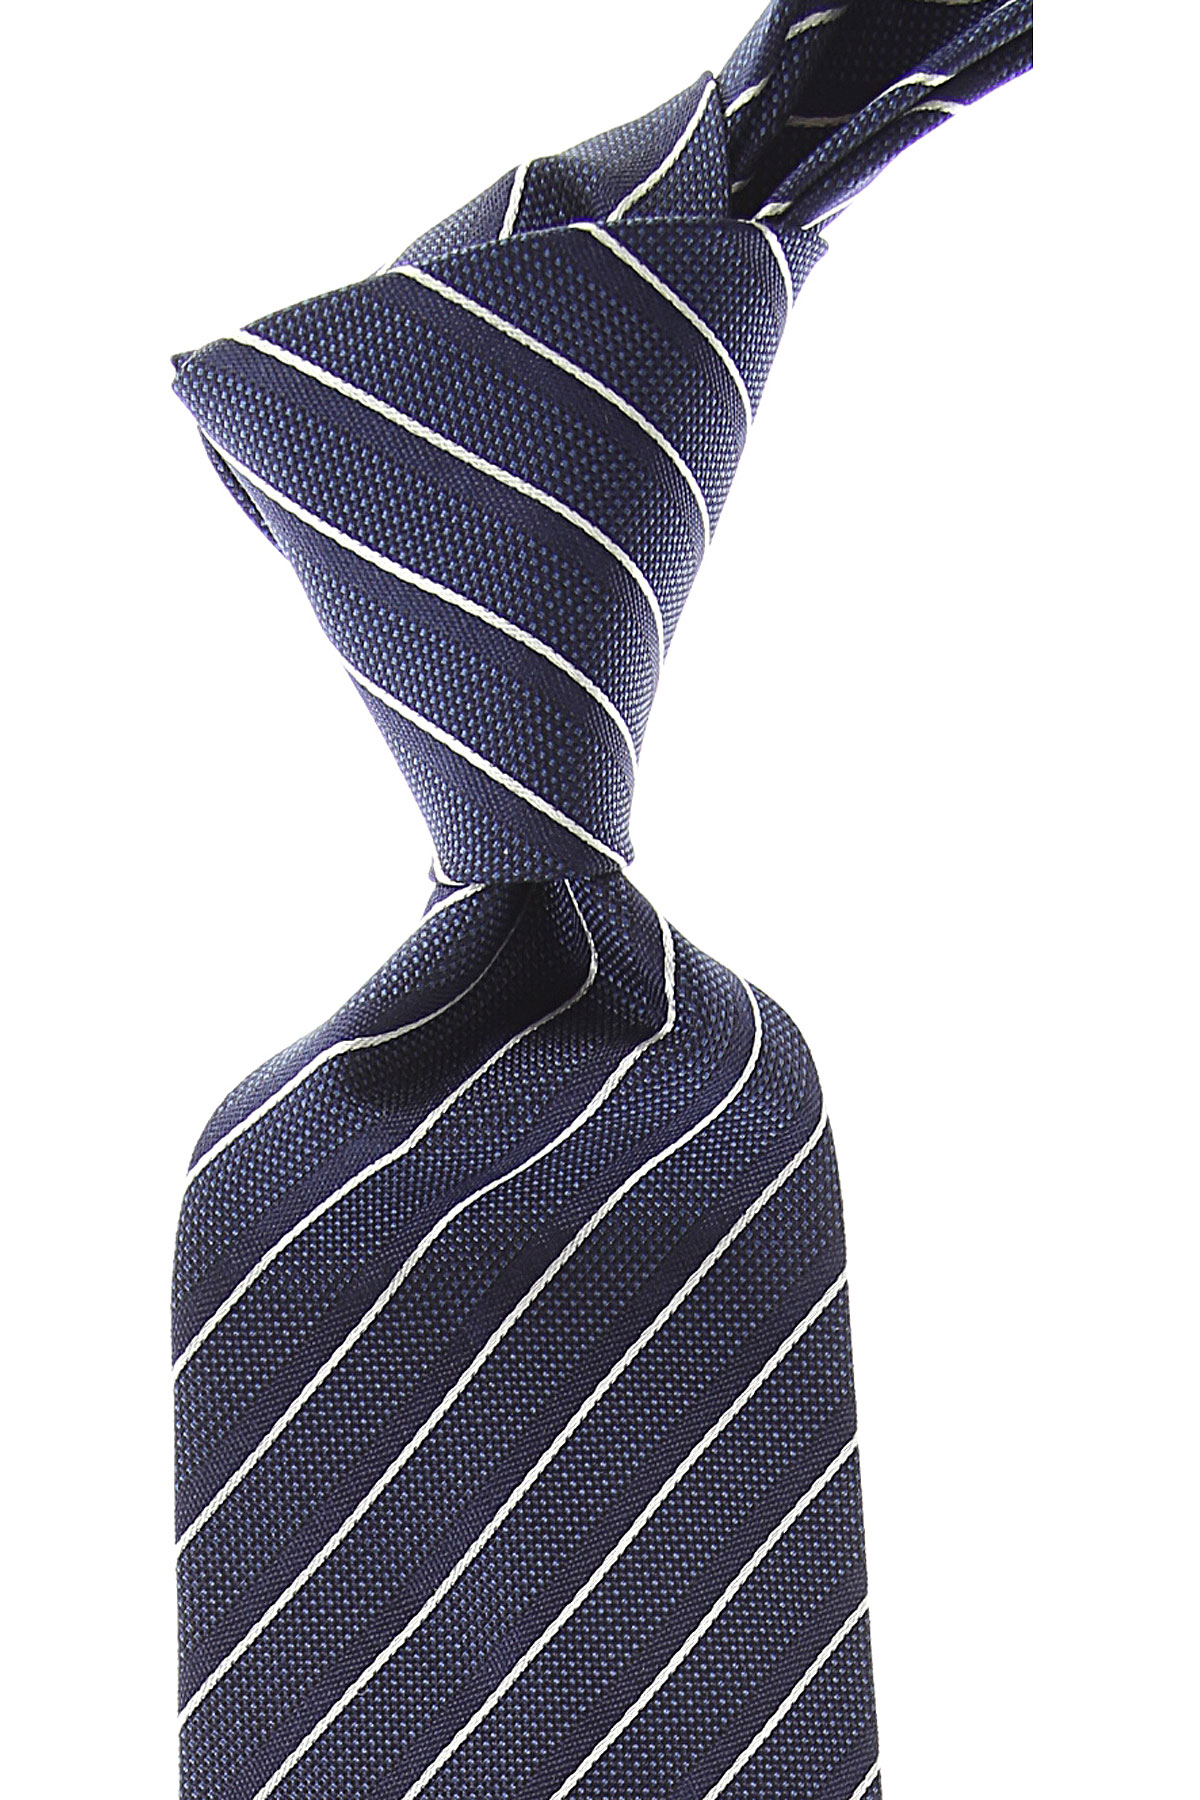 Giorgio_Armani_Ties_On_Sale_Blue_Navy_Silk_2019